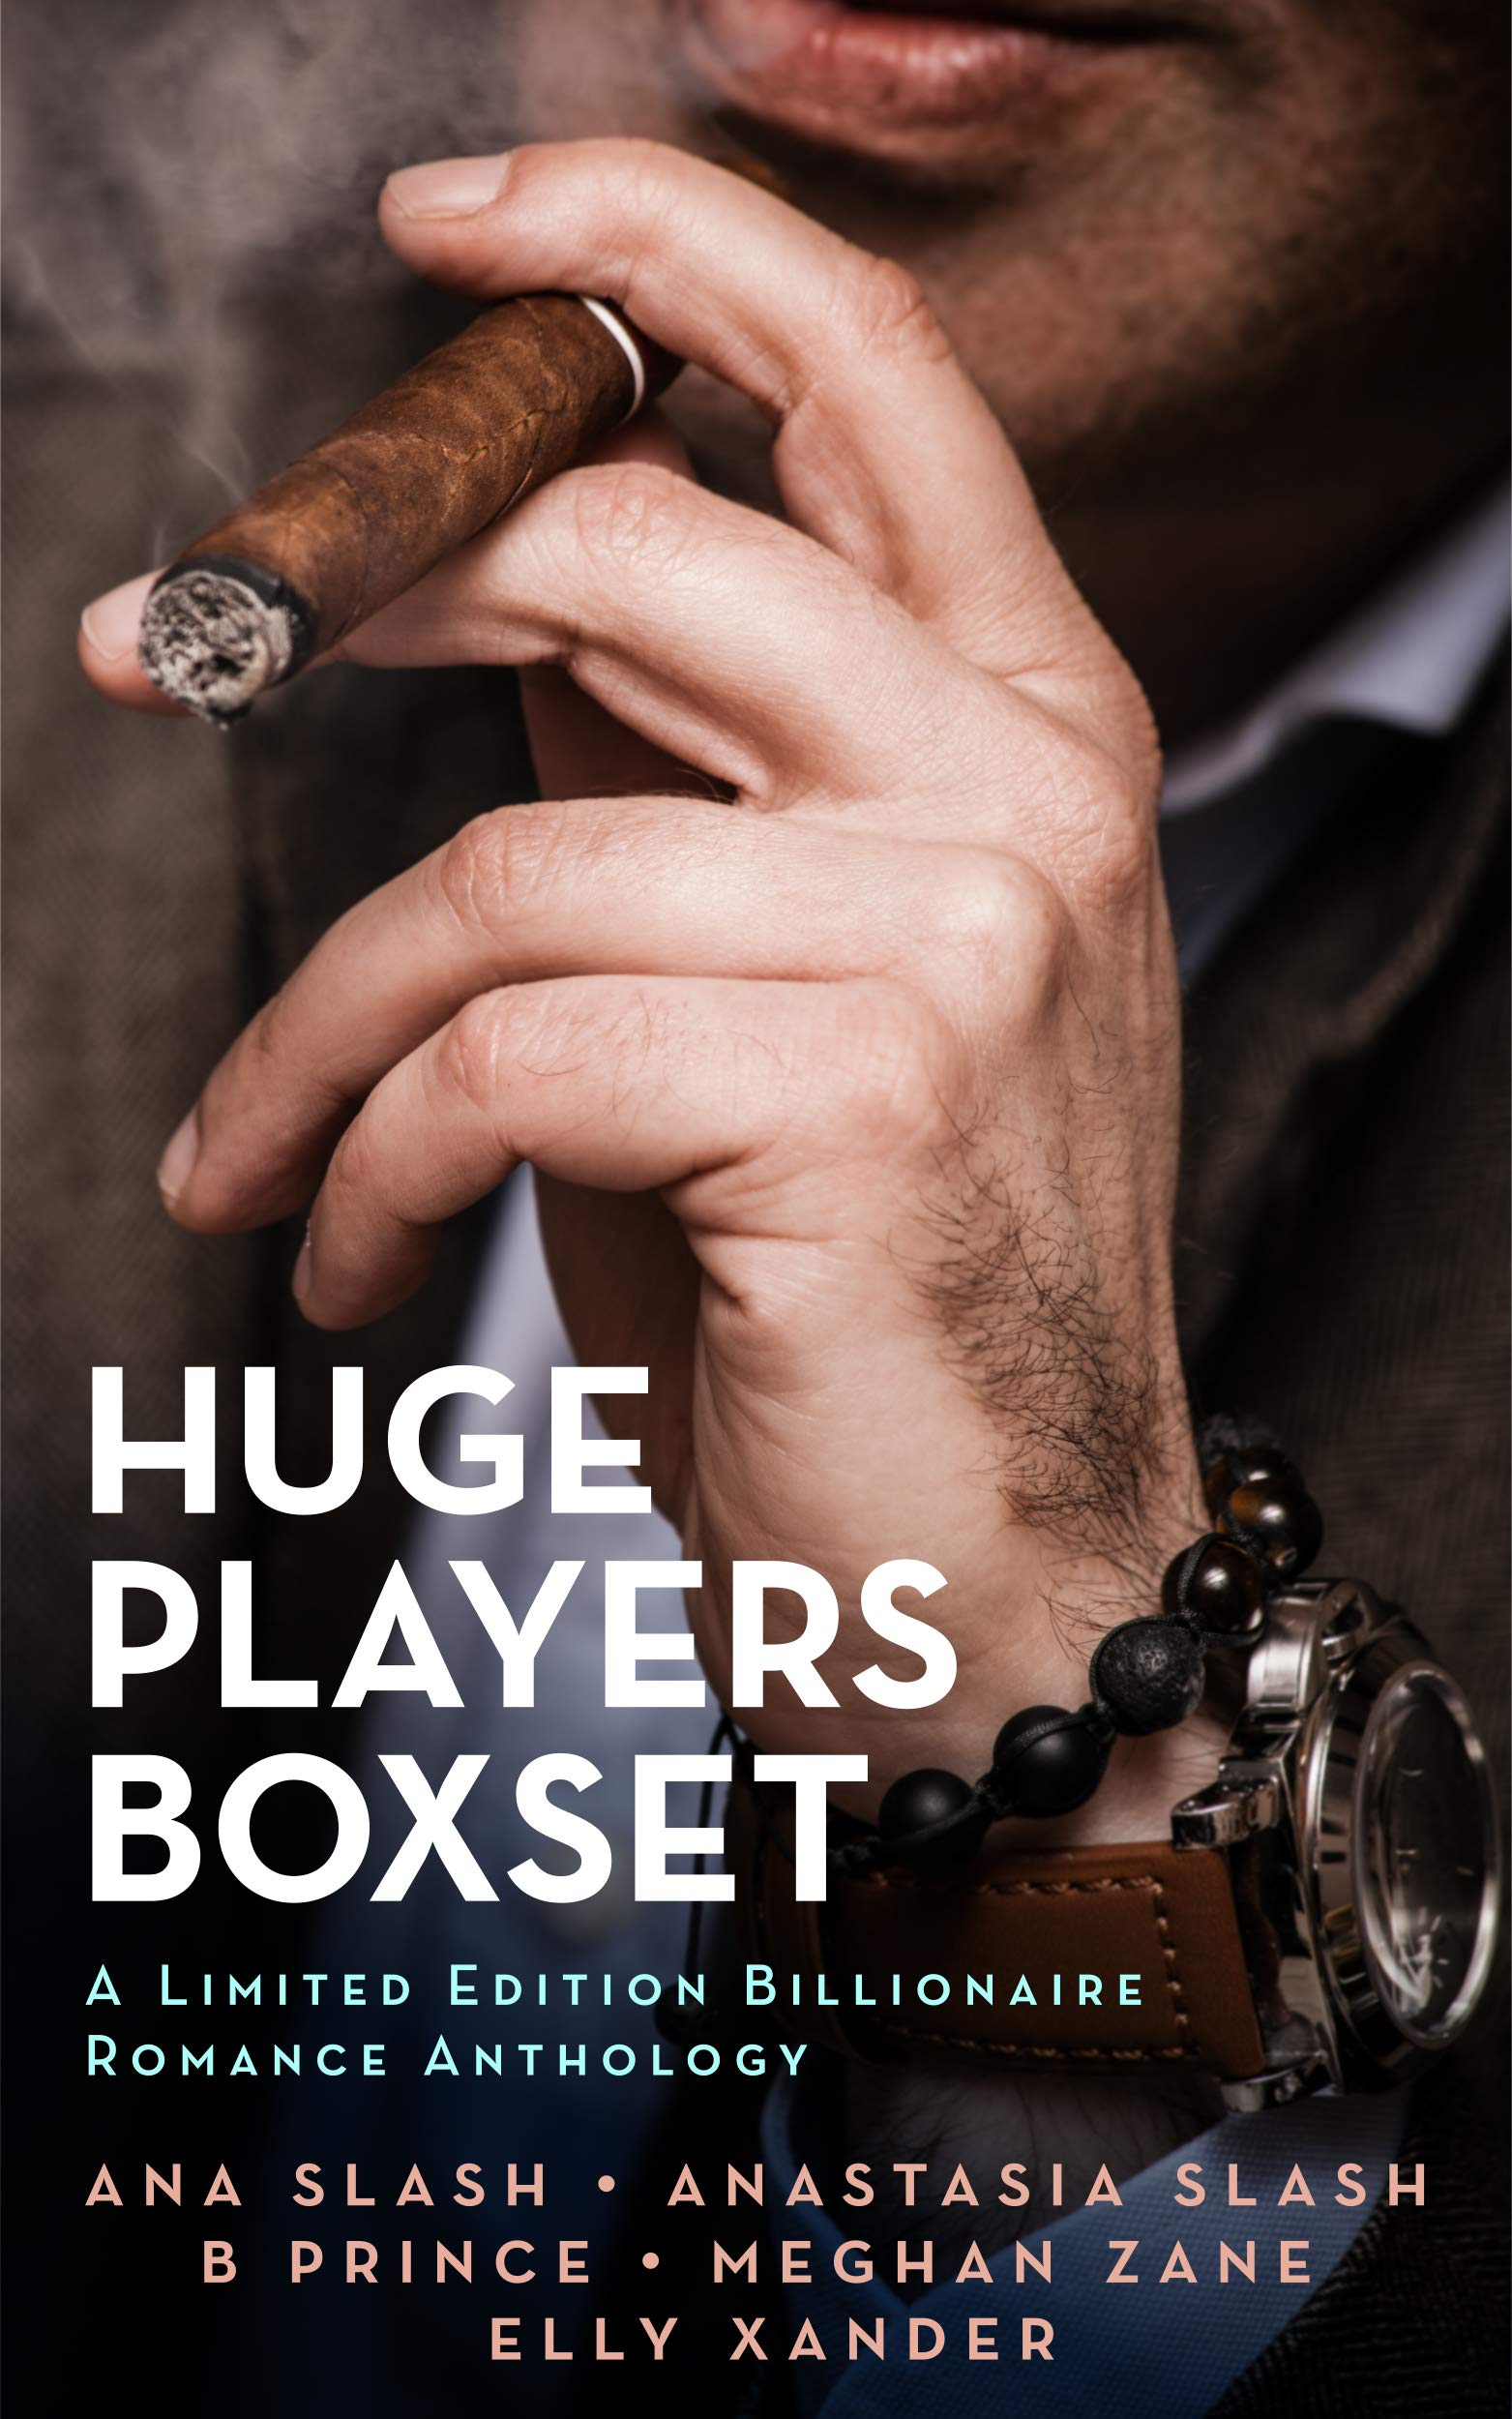 HUGE PLAYERS BOXSET: A Limited Edition Billionaire Romance Anthology